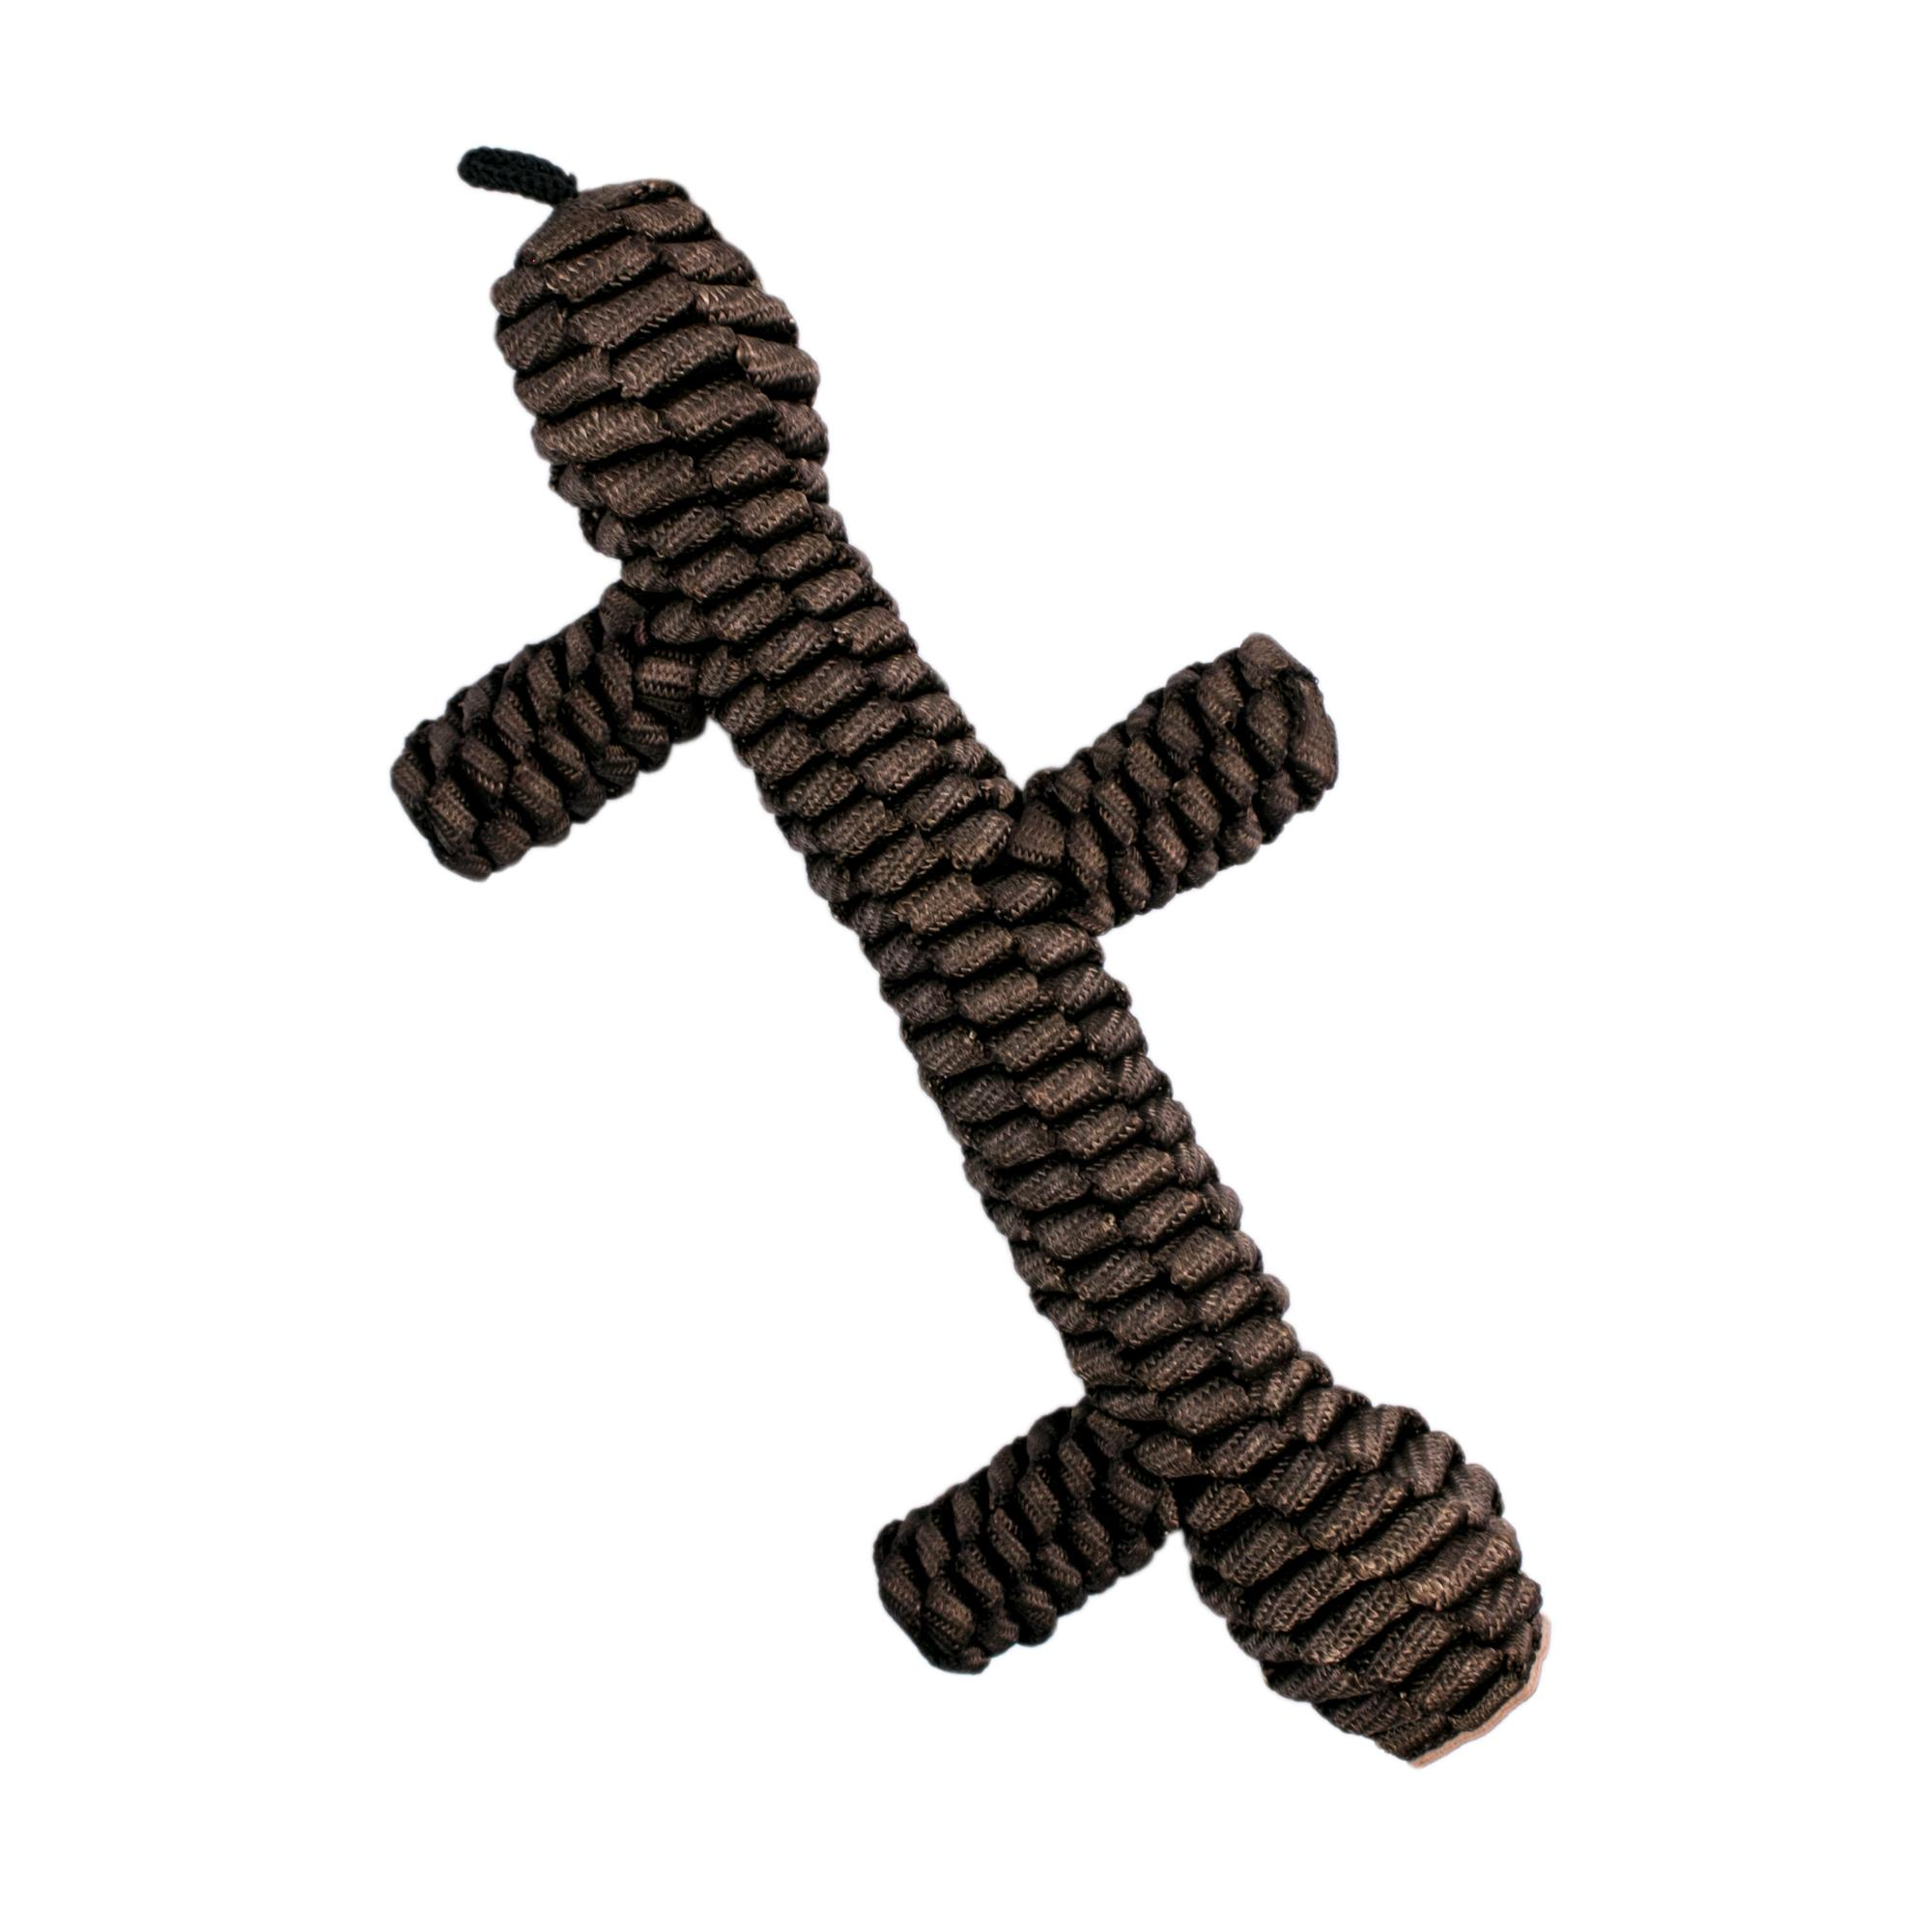 Tall Tails Braided Stick Dog Toy, Brown, 9-in (Size: 9-in) Image